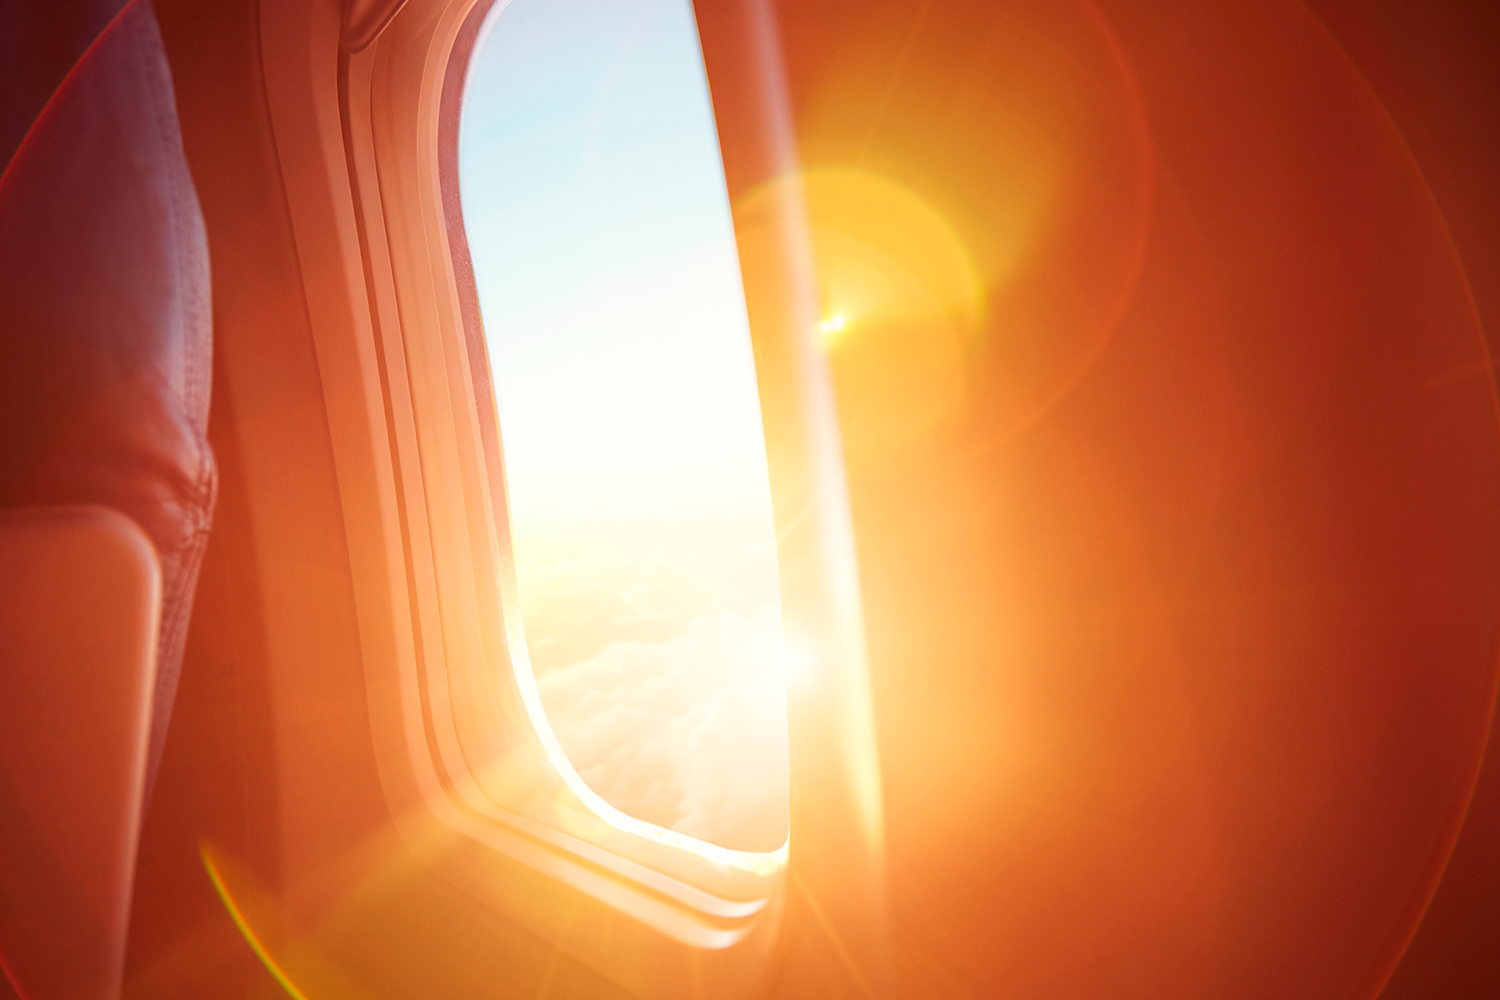 Here's Why Planes Can't Take Off When It's Too Hot